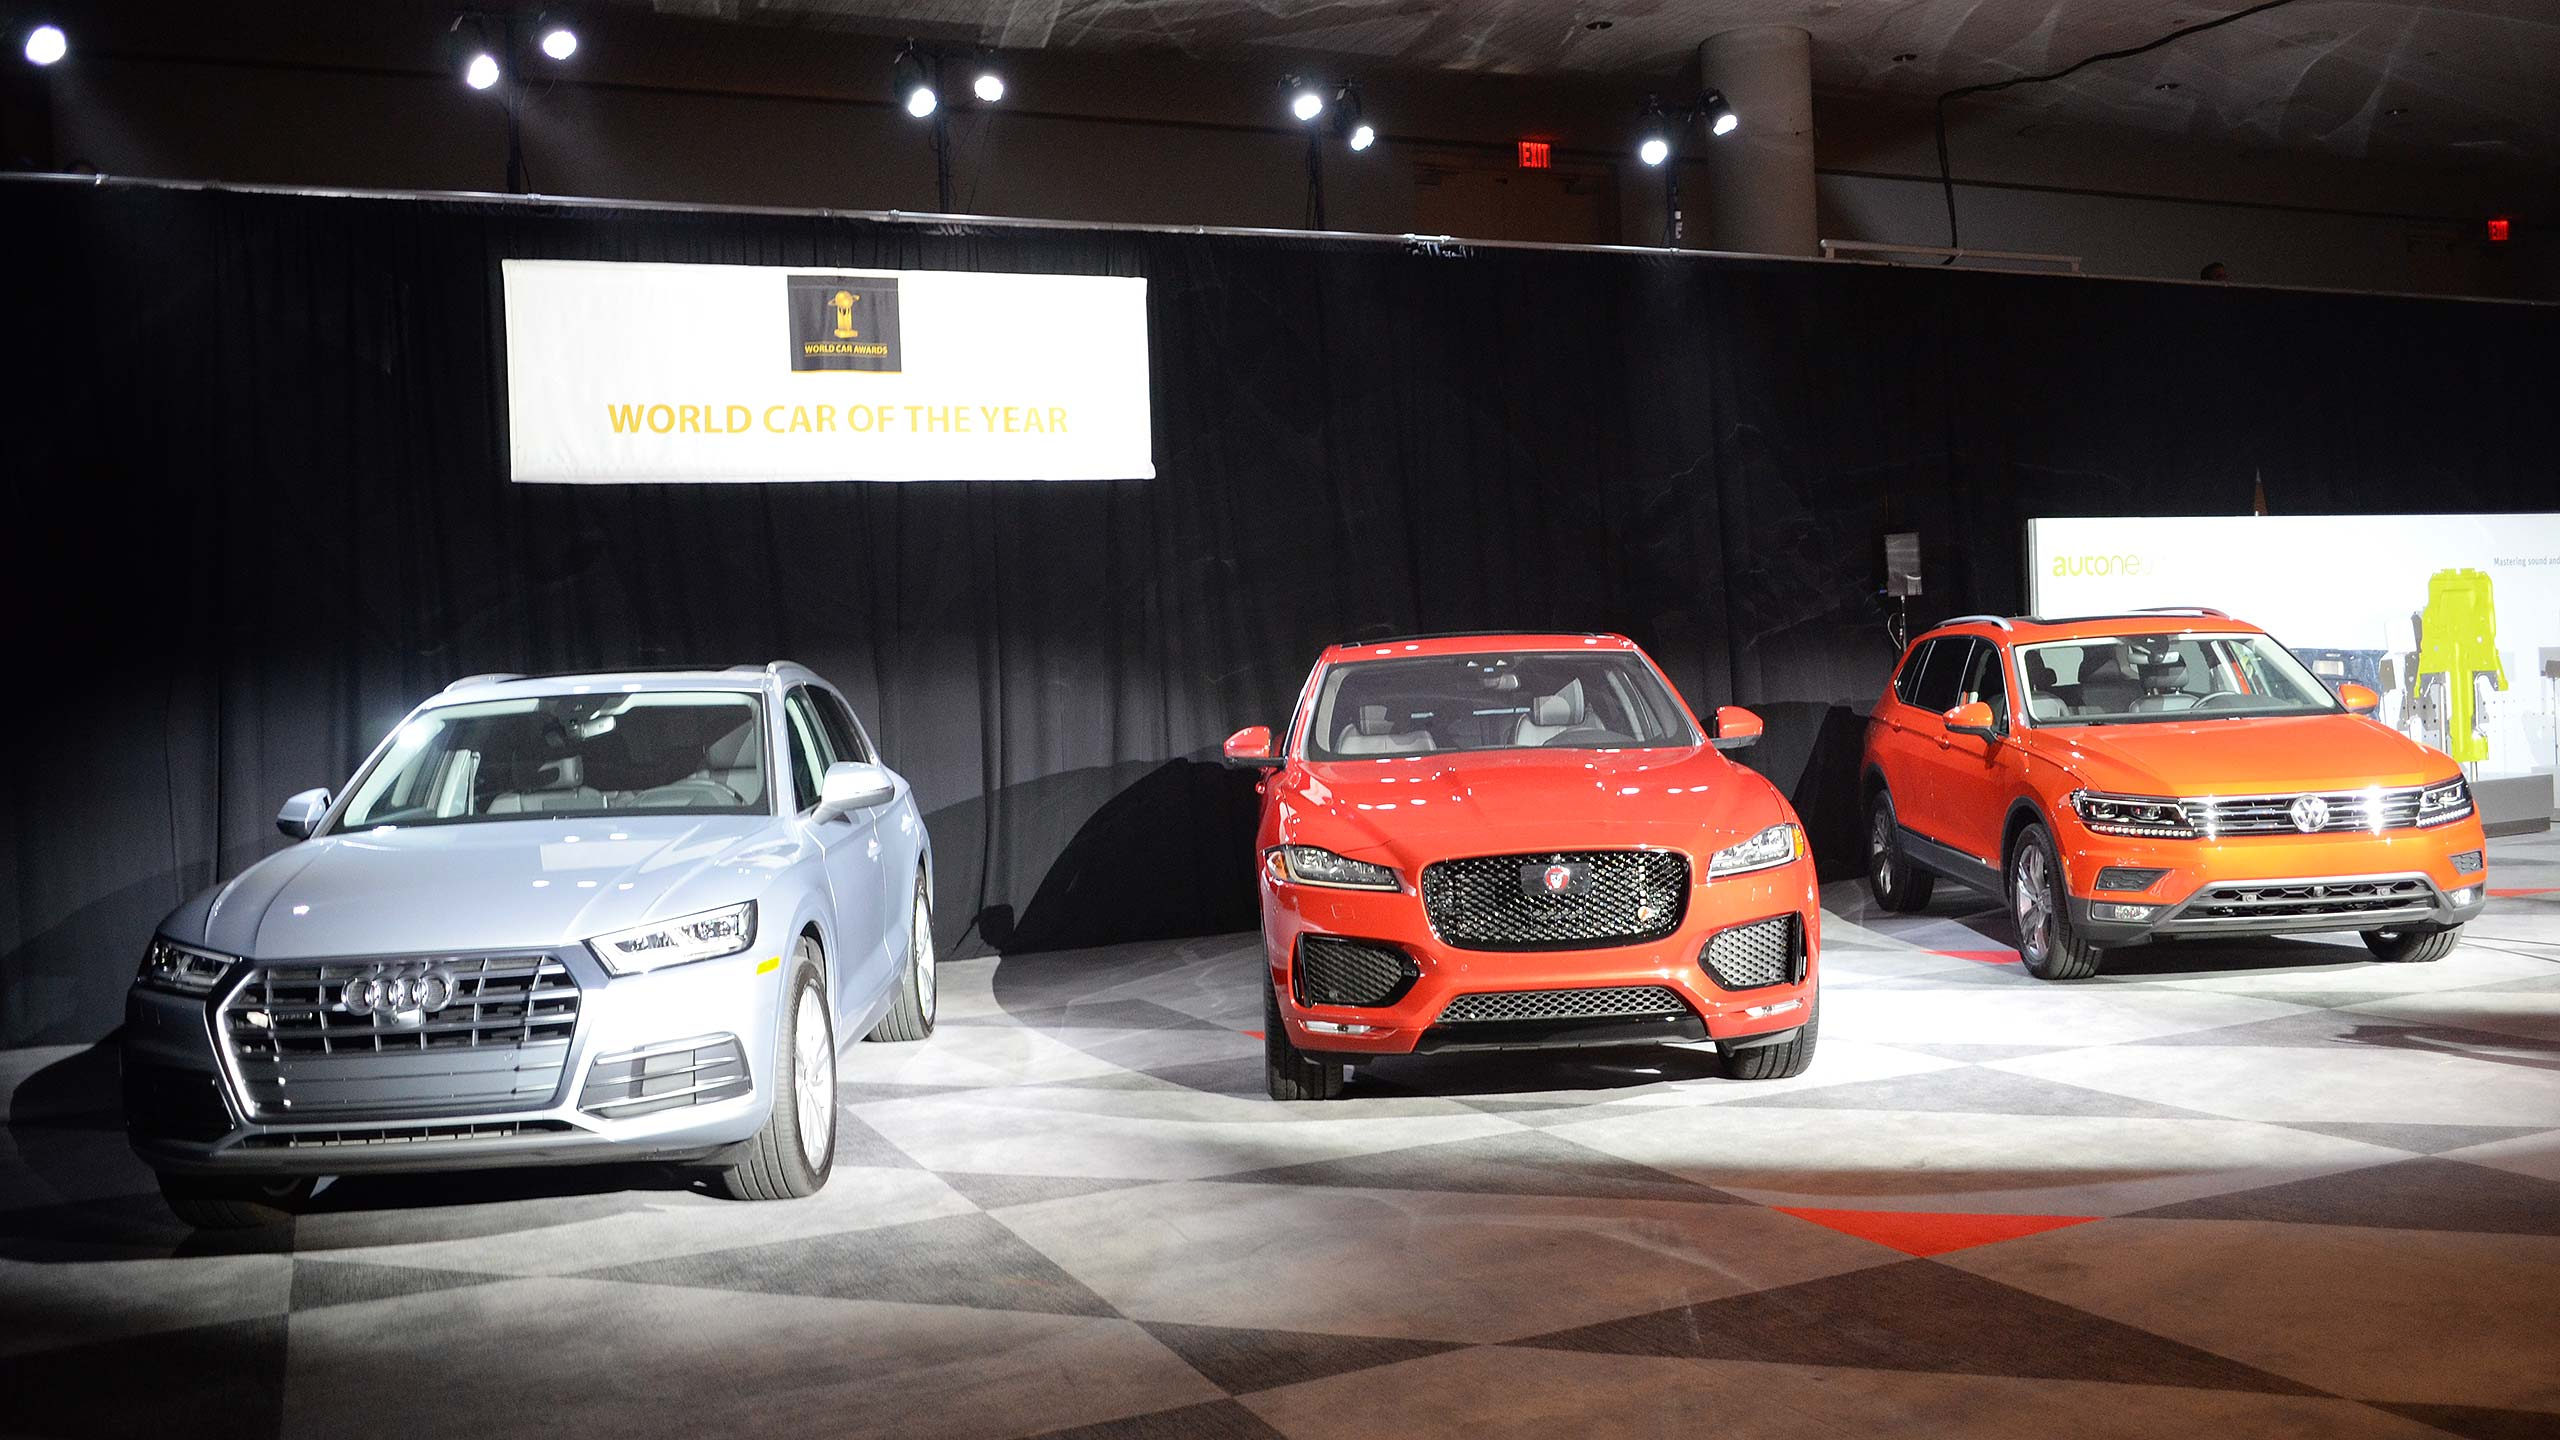 The World Car Awards This Year Had The Honour Of Opening The New York Motor  Show, Revealing The 2017 Winners At A Big Ceremony.